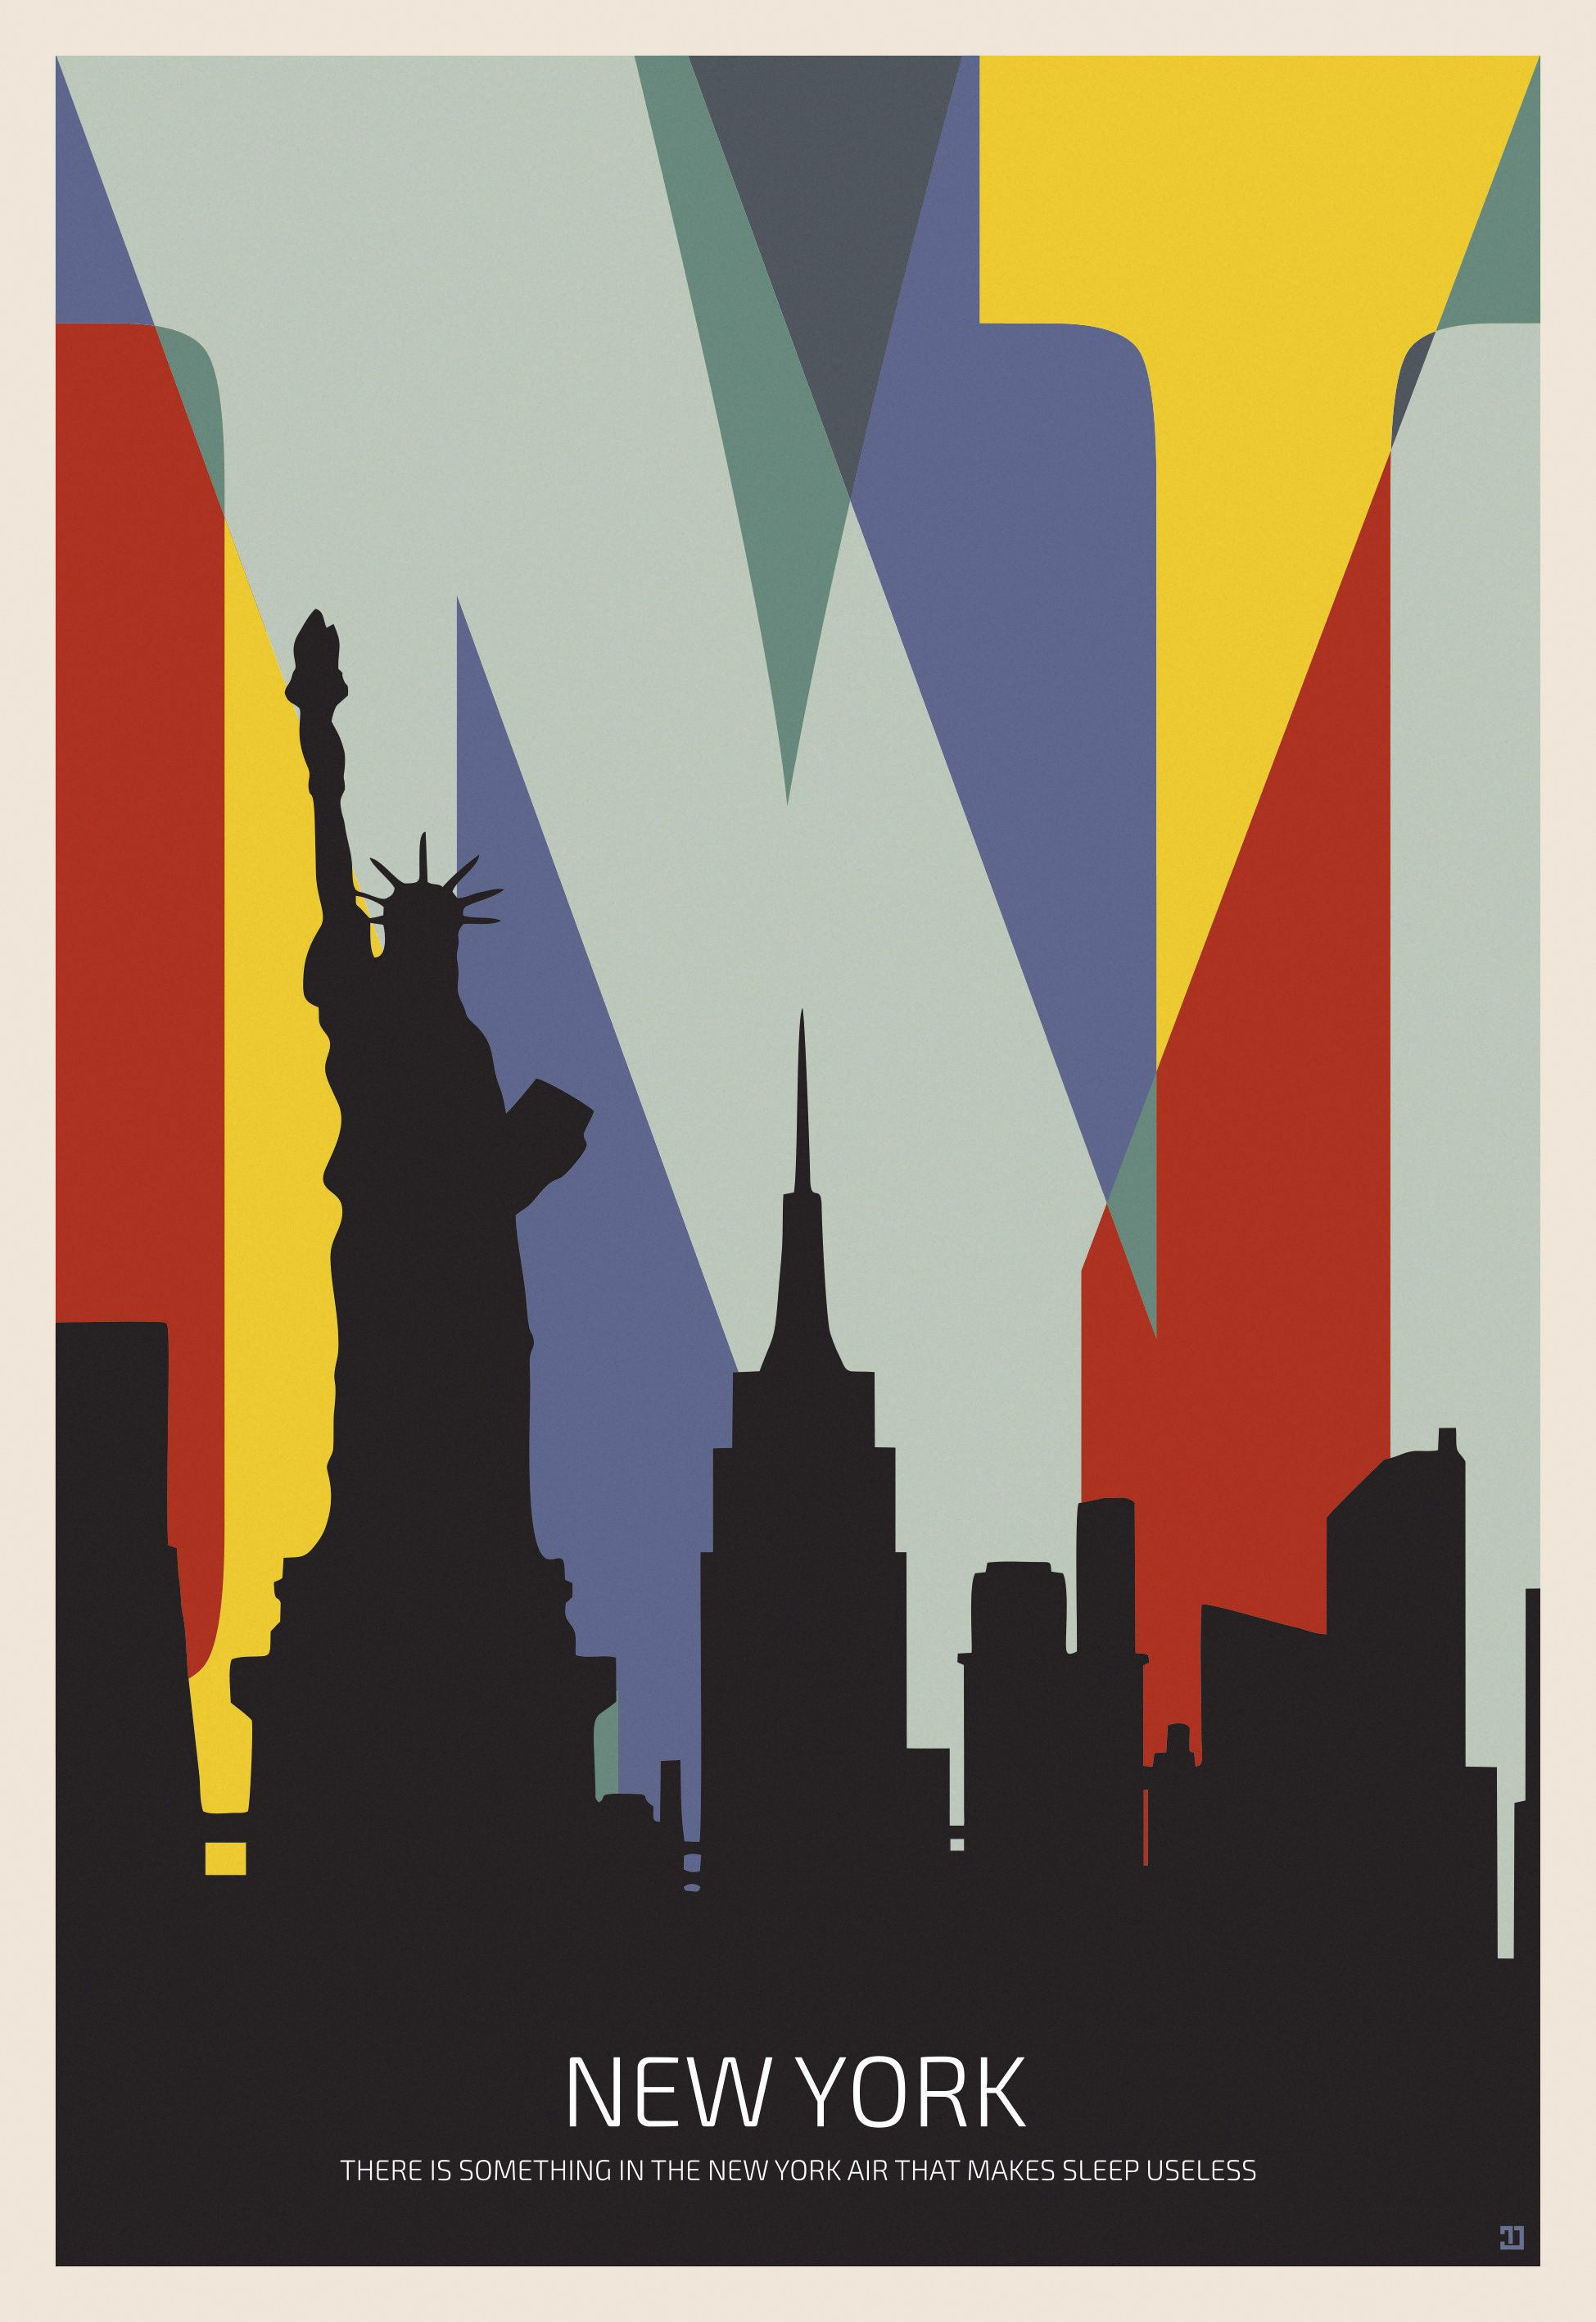 New York City Poster Colorful Typography Wall Art New York Silhouette Poster High Quality Digital File Digital Art Design Typography Wall Art Art Deco Artwork